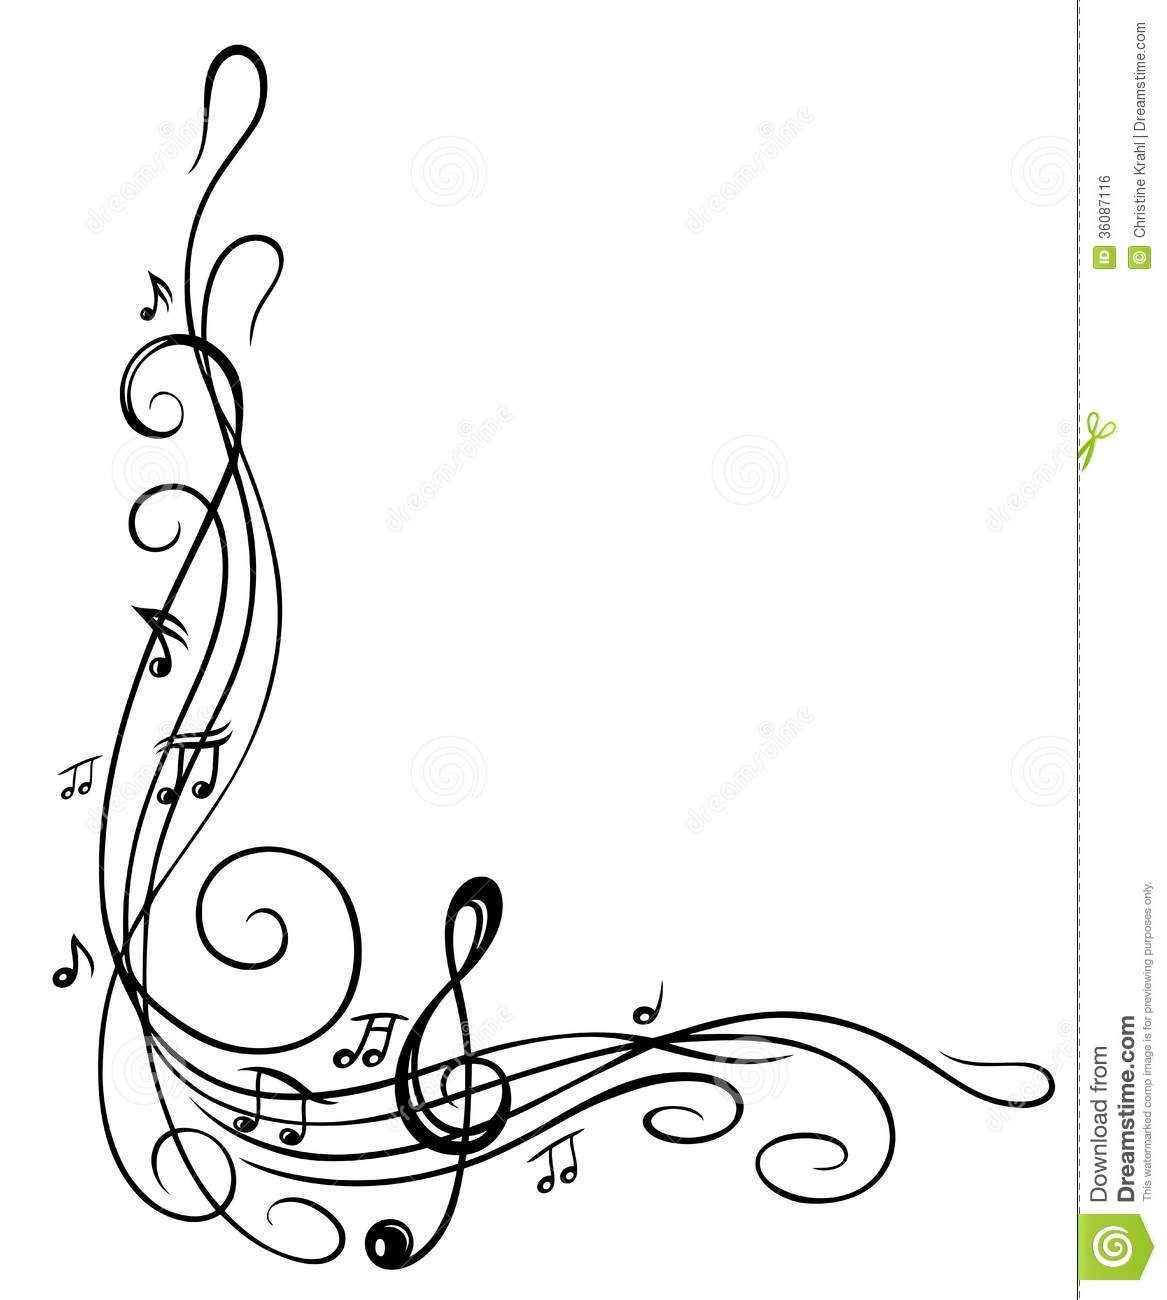 Pix For > Music Notes Border.